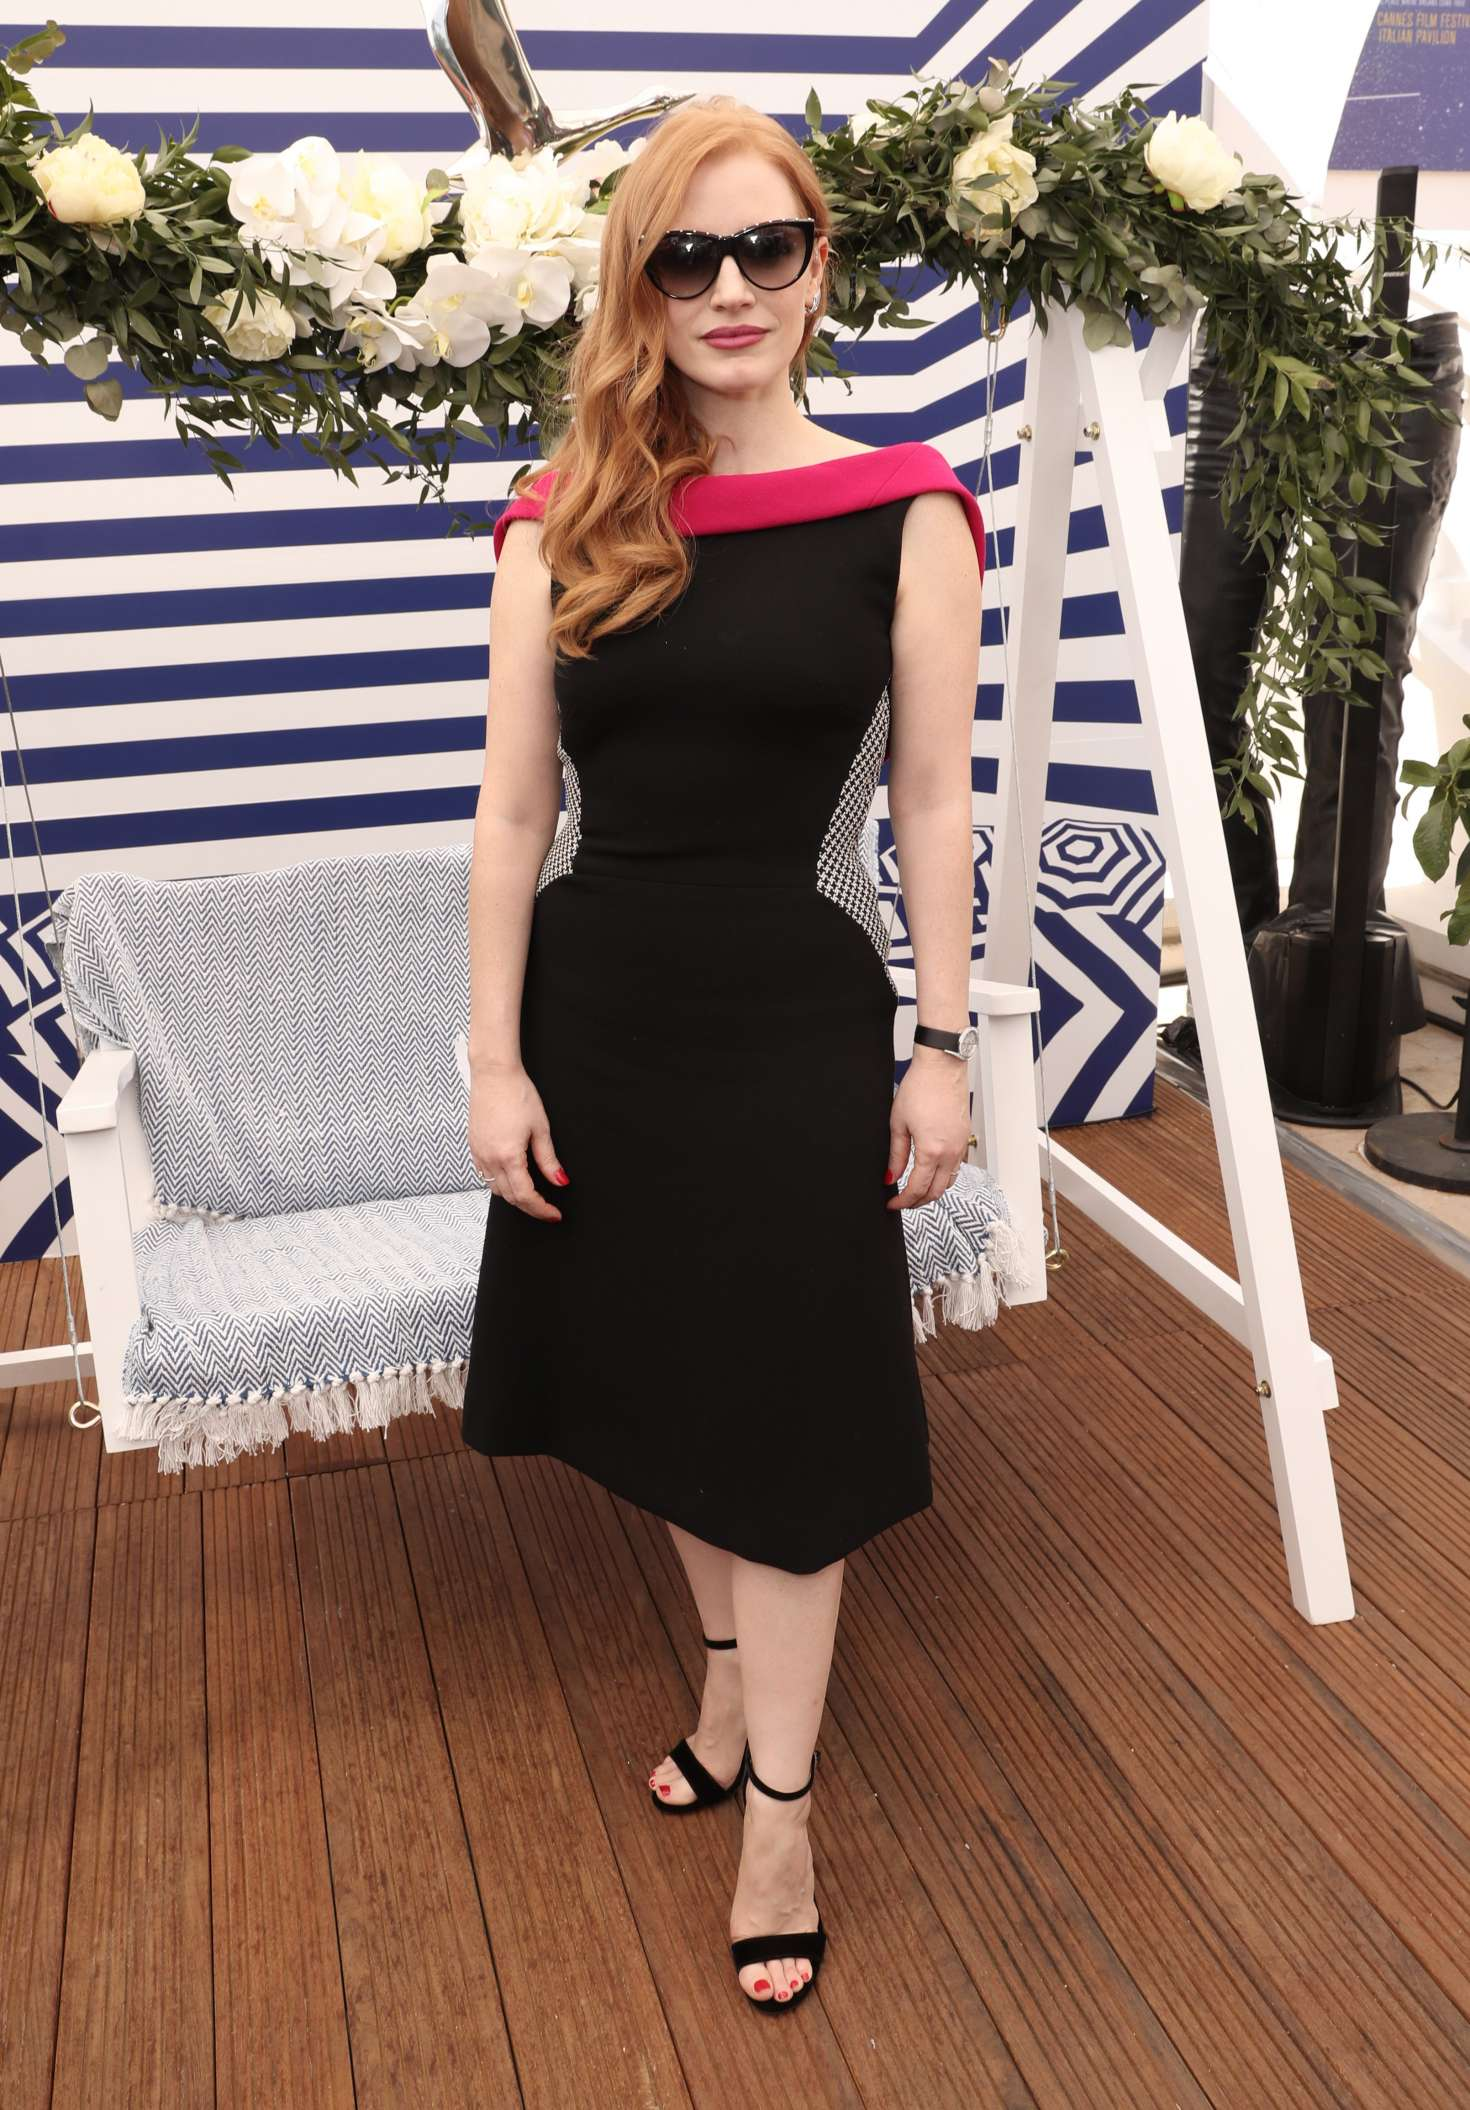 http://www.gotceleb.com/wp-content/uploads/photos/jessica-chastain/355-cocktail-party-with-directv-and-the-hollywood-reporter-at-2018-cannes-film-festival/Jessica-Chastain:-355-Cocktail-Party-with-DIRECTV-and-The-Hollywood-Reporter--04.jpg